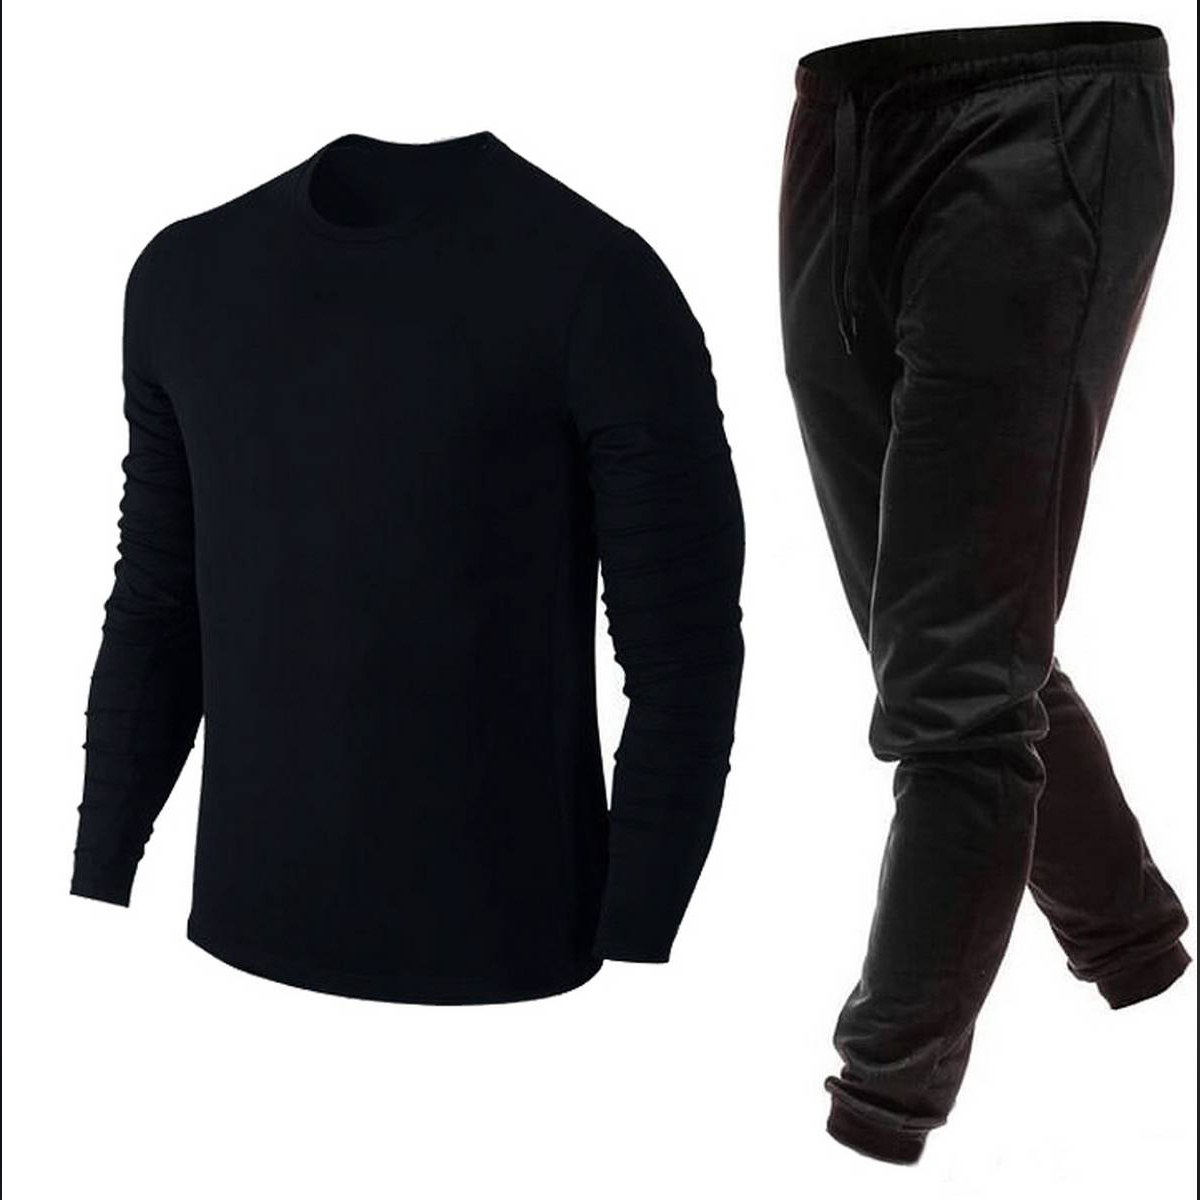 Plain Black New Collection Sports Tracksuit Casual Cotton Round Neck Tees Full Sleeves T Shirt And Trouser For Men - IJ Traders